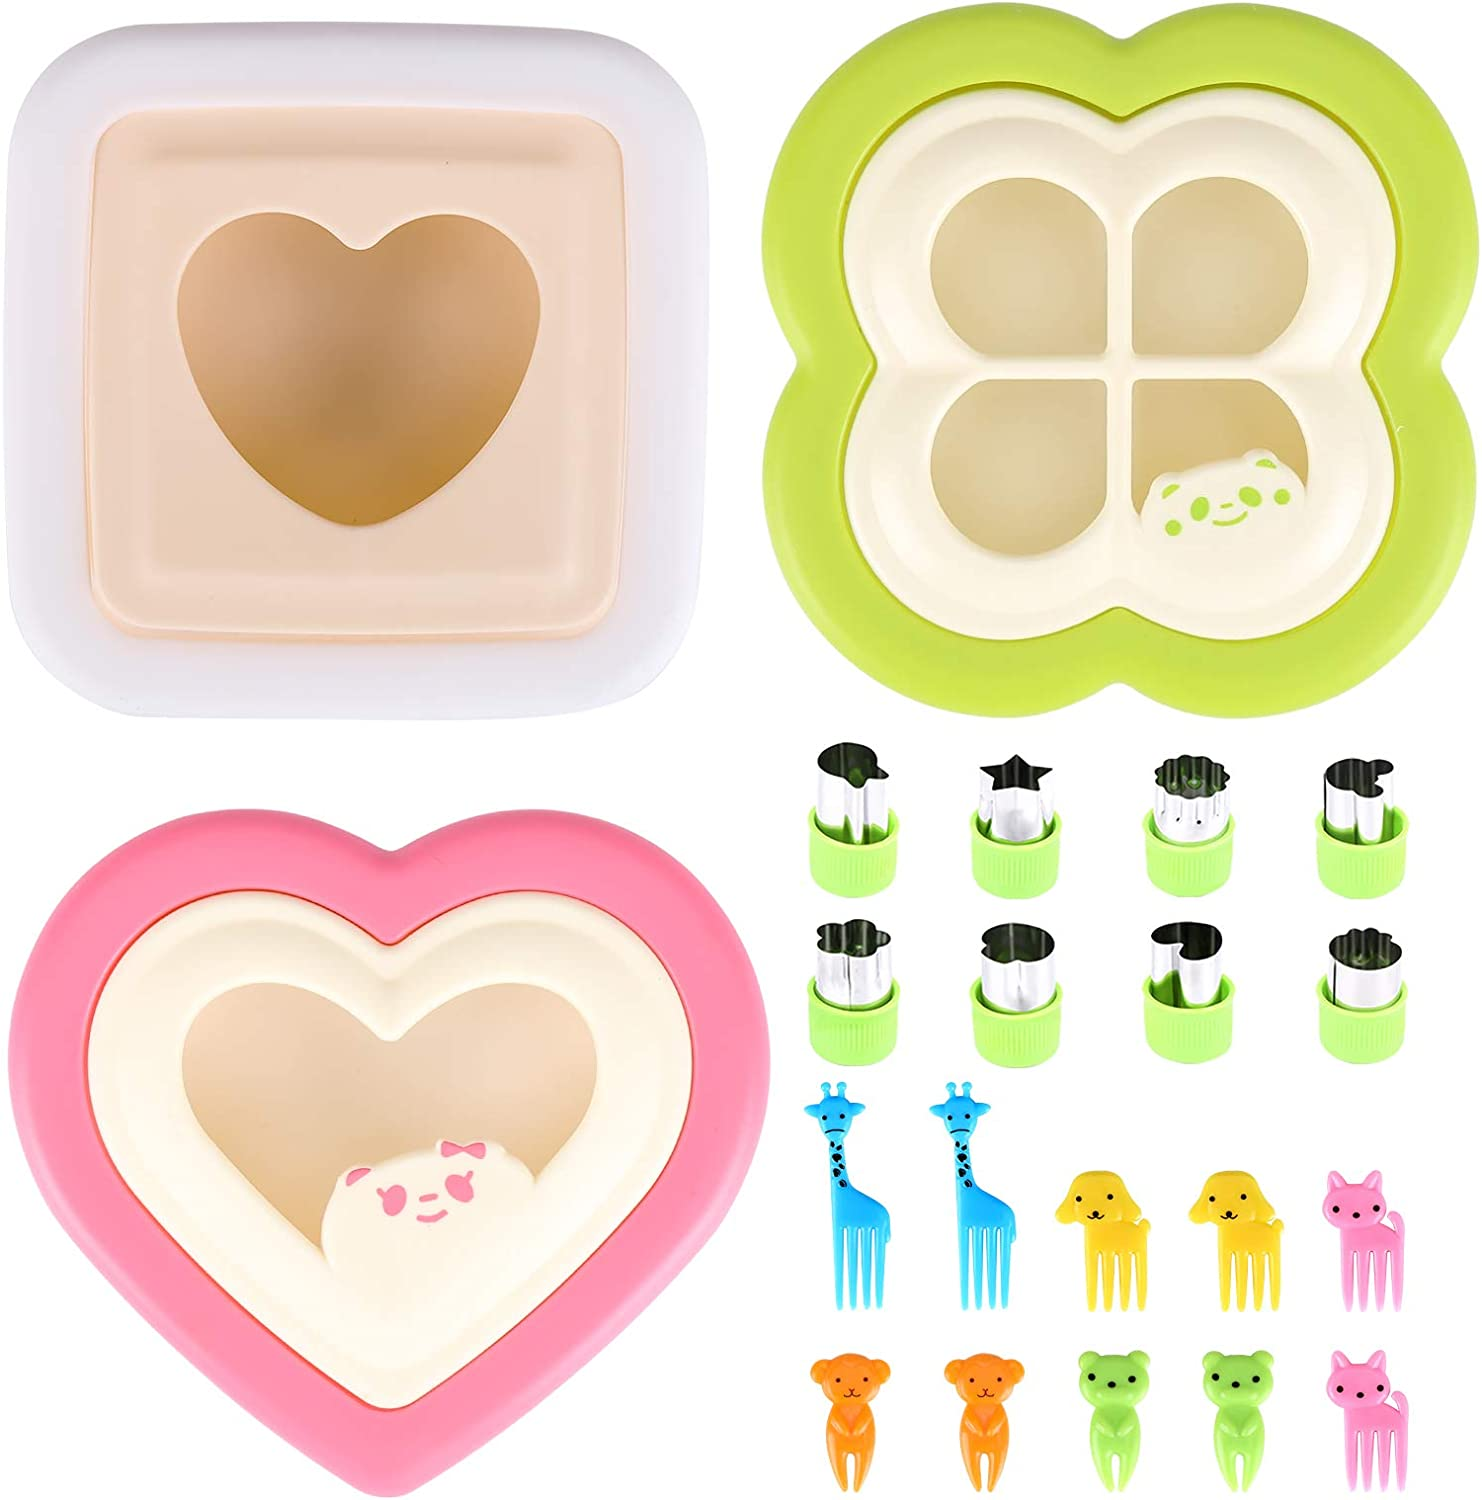 Sandwich Cutter and Sealer,21 piece set,Fun Sandwich Cutters for Kids,Cut and Seal Decruster Sandwich Maker Shapes,Includes Fruit and Vegetable Cutters Food Picks,Boys and Girls Easy to Use (green)